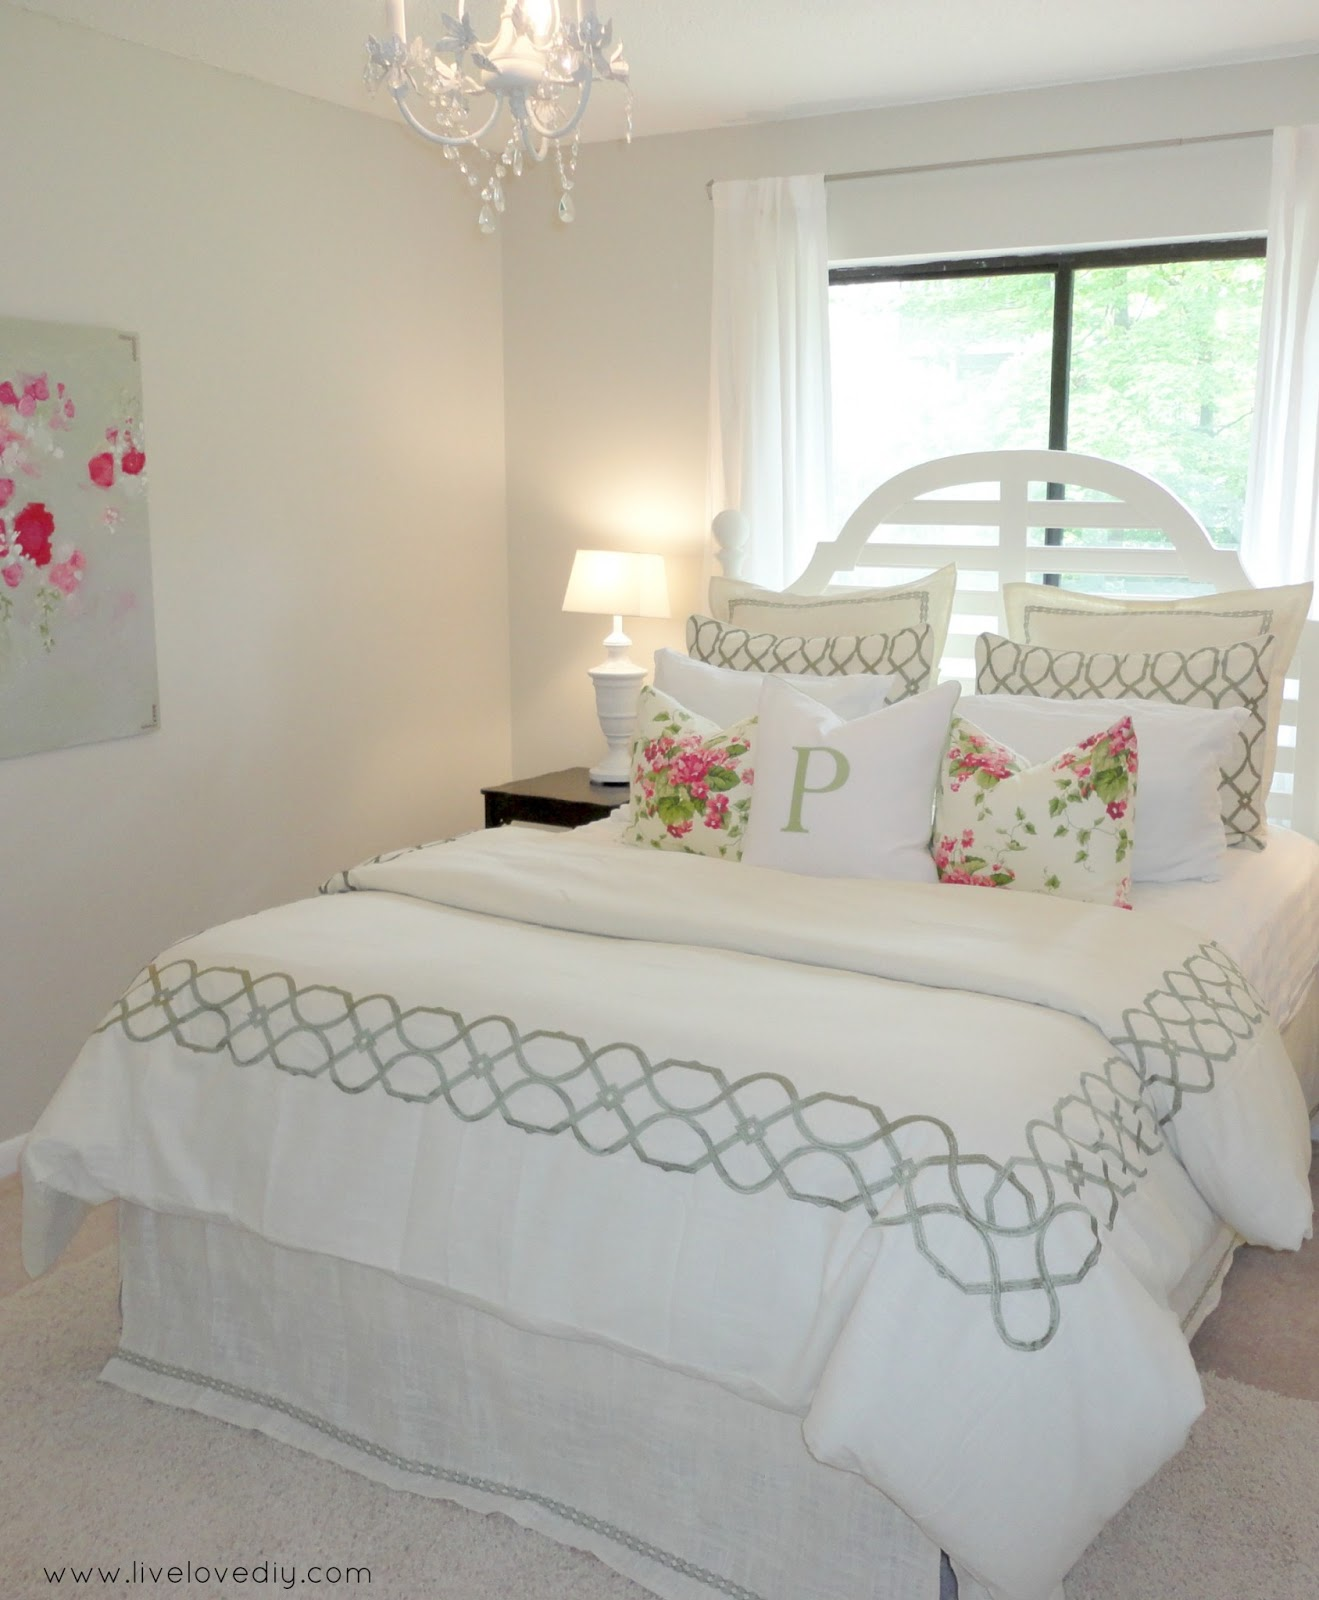 Livelovediy decorating bedrooms with secondhand finds the guest bedroom reveal - How to decorate simple room ...